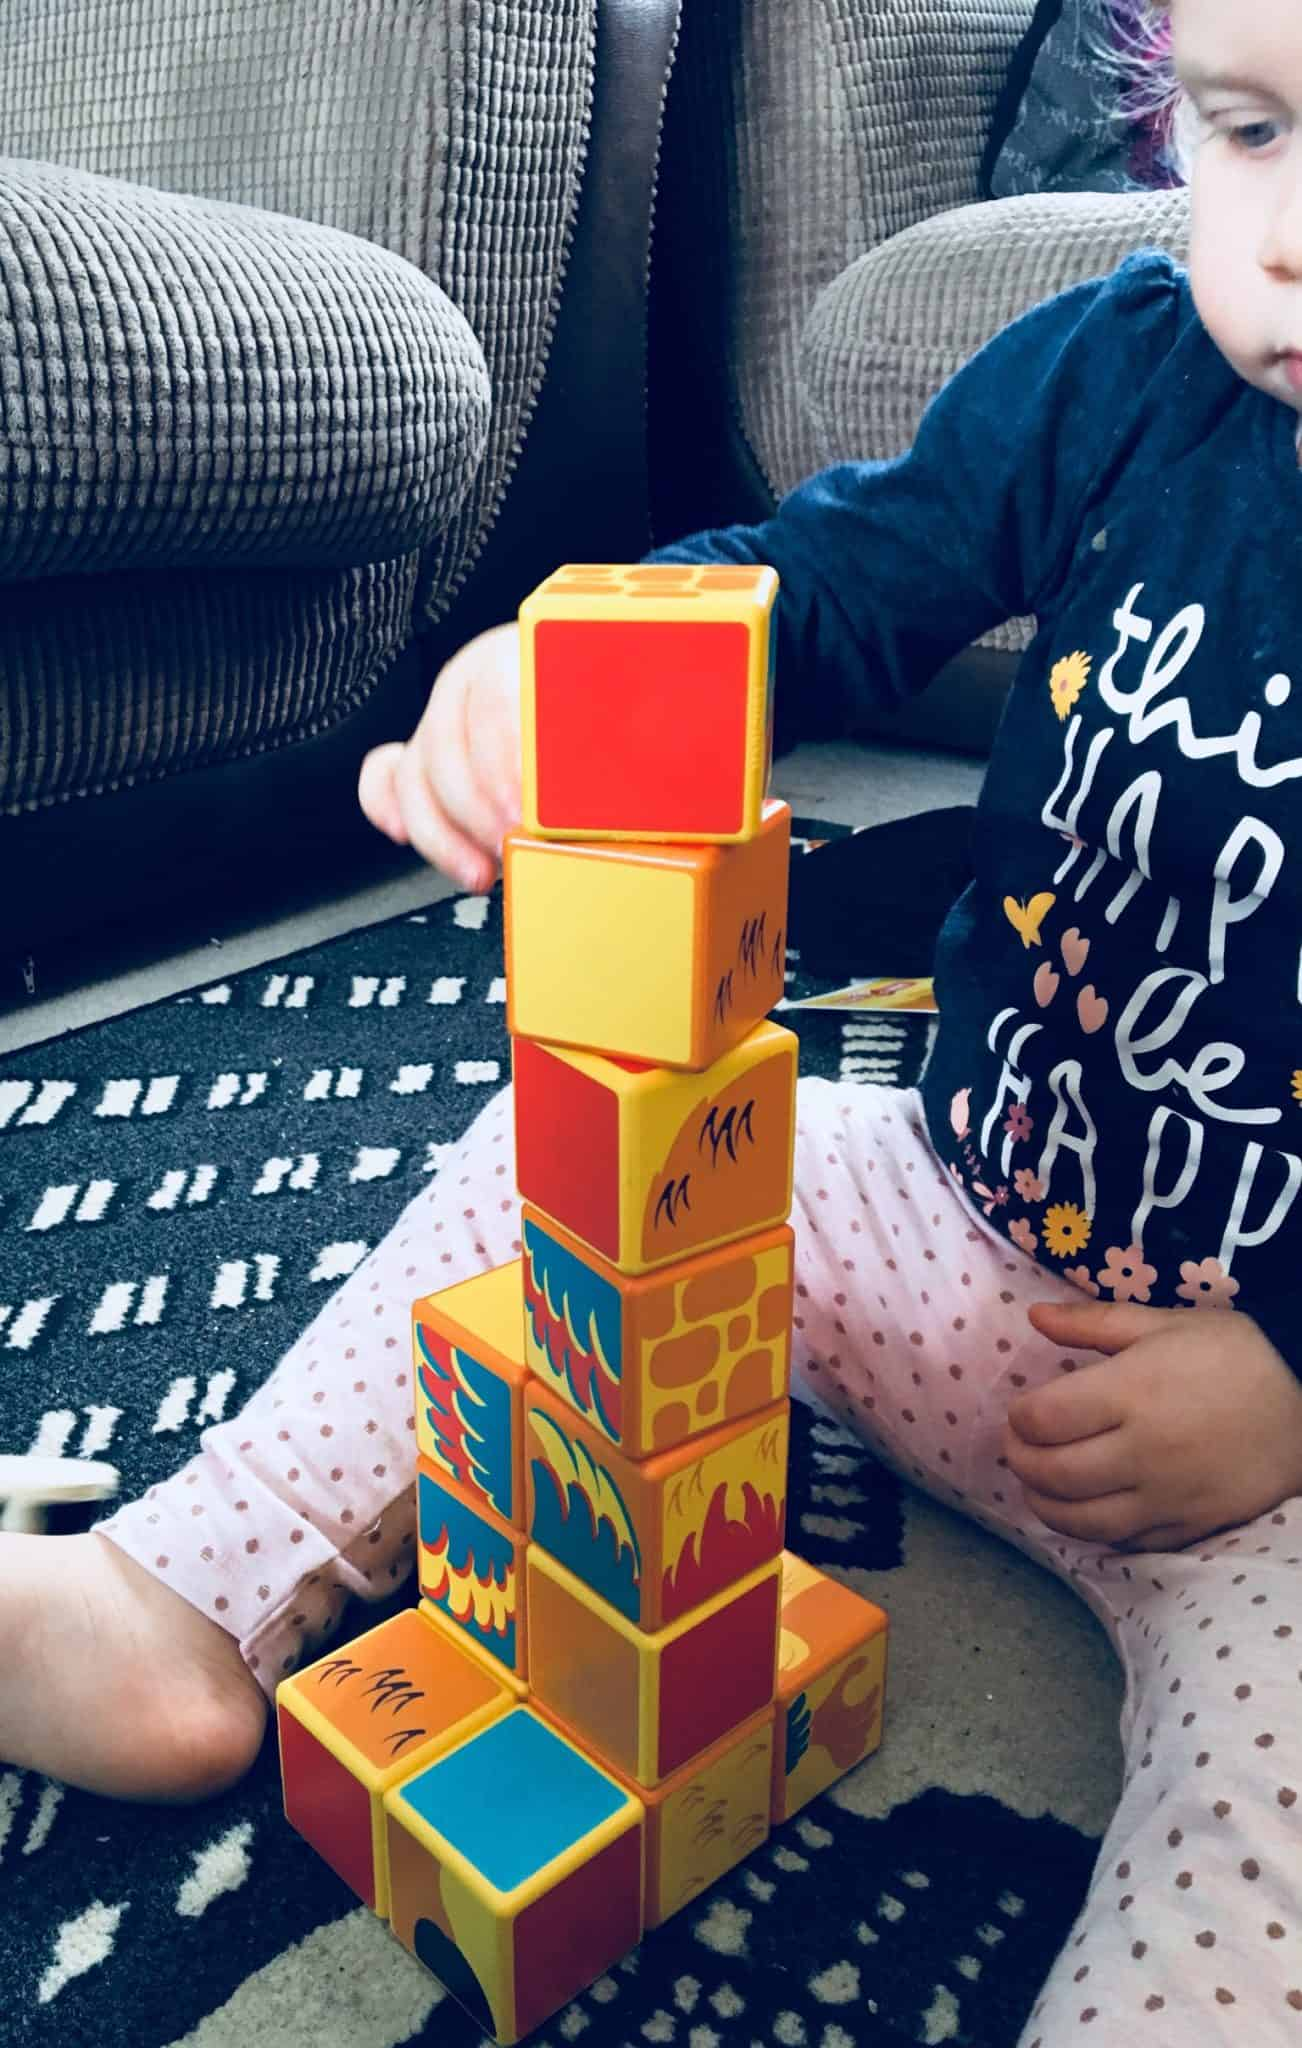 baby girl building her magicube's